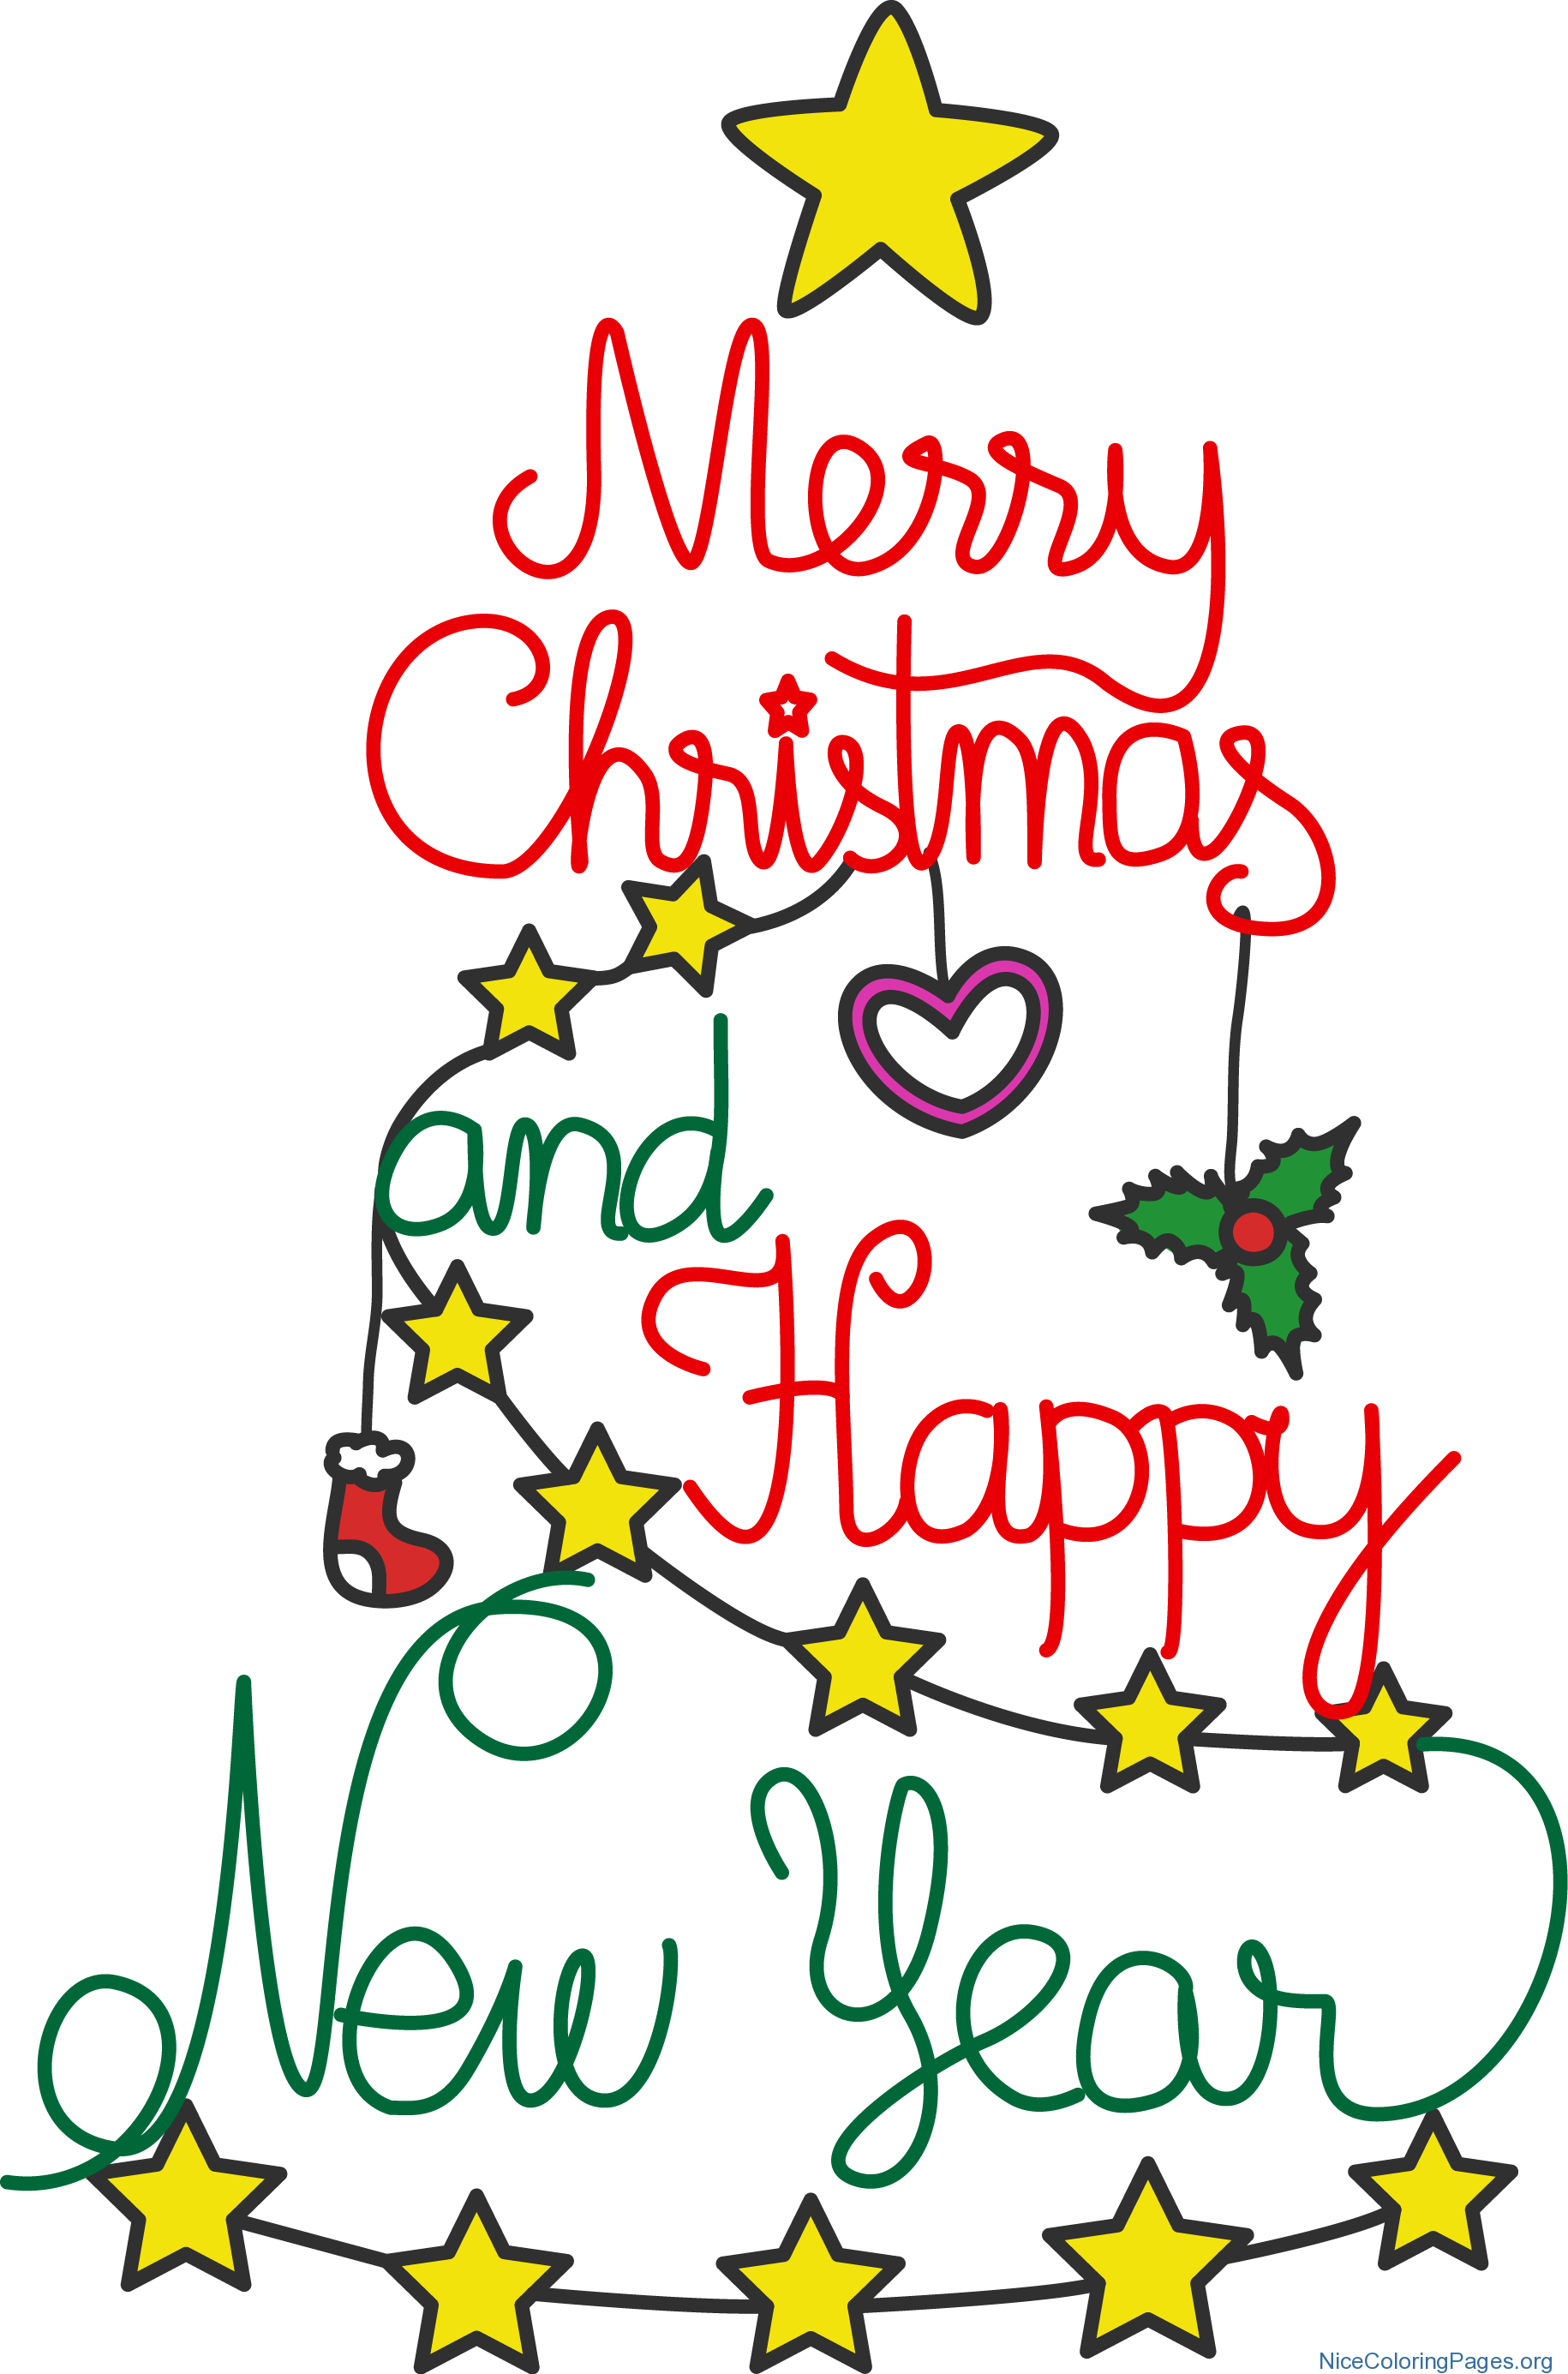 Christmas and new year clipart picture free stock Merry Christmas and Happy New Year Clipart | Nice Coloring Pages for ... picture free stock